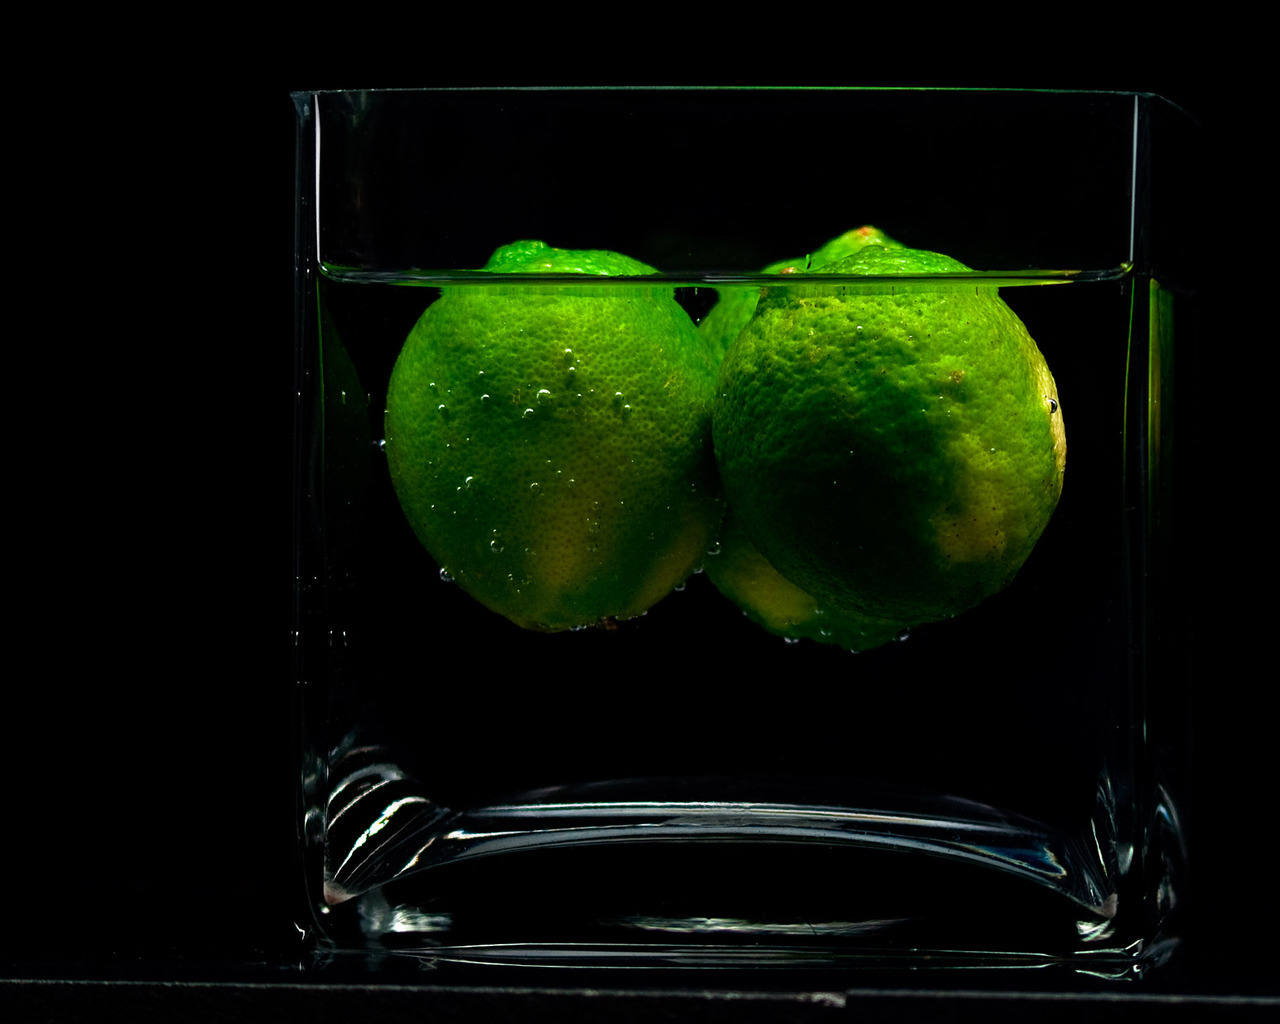 12692 download wallpaper Fruits, Water, Food, Art Photo, Lime screensavers and pictures for free